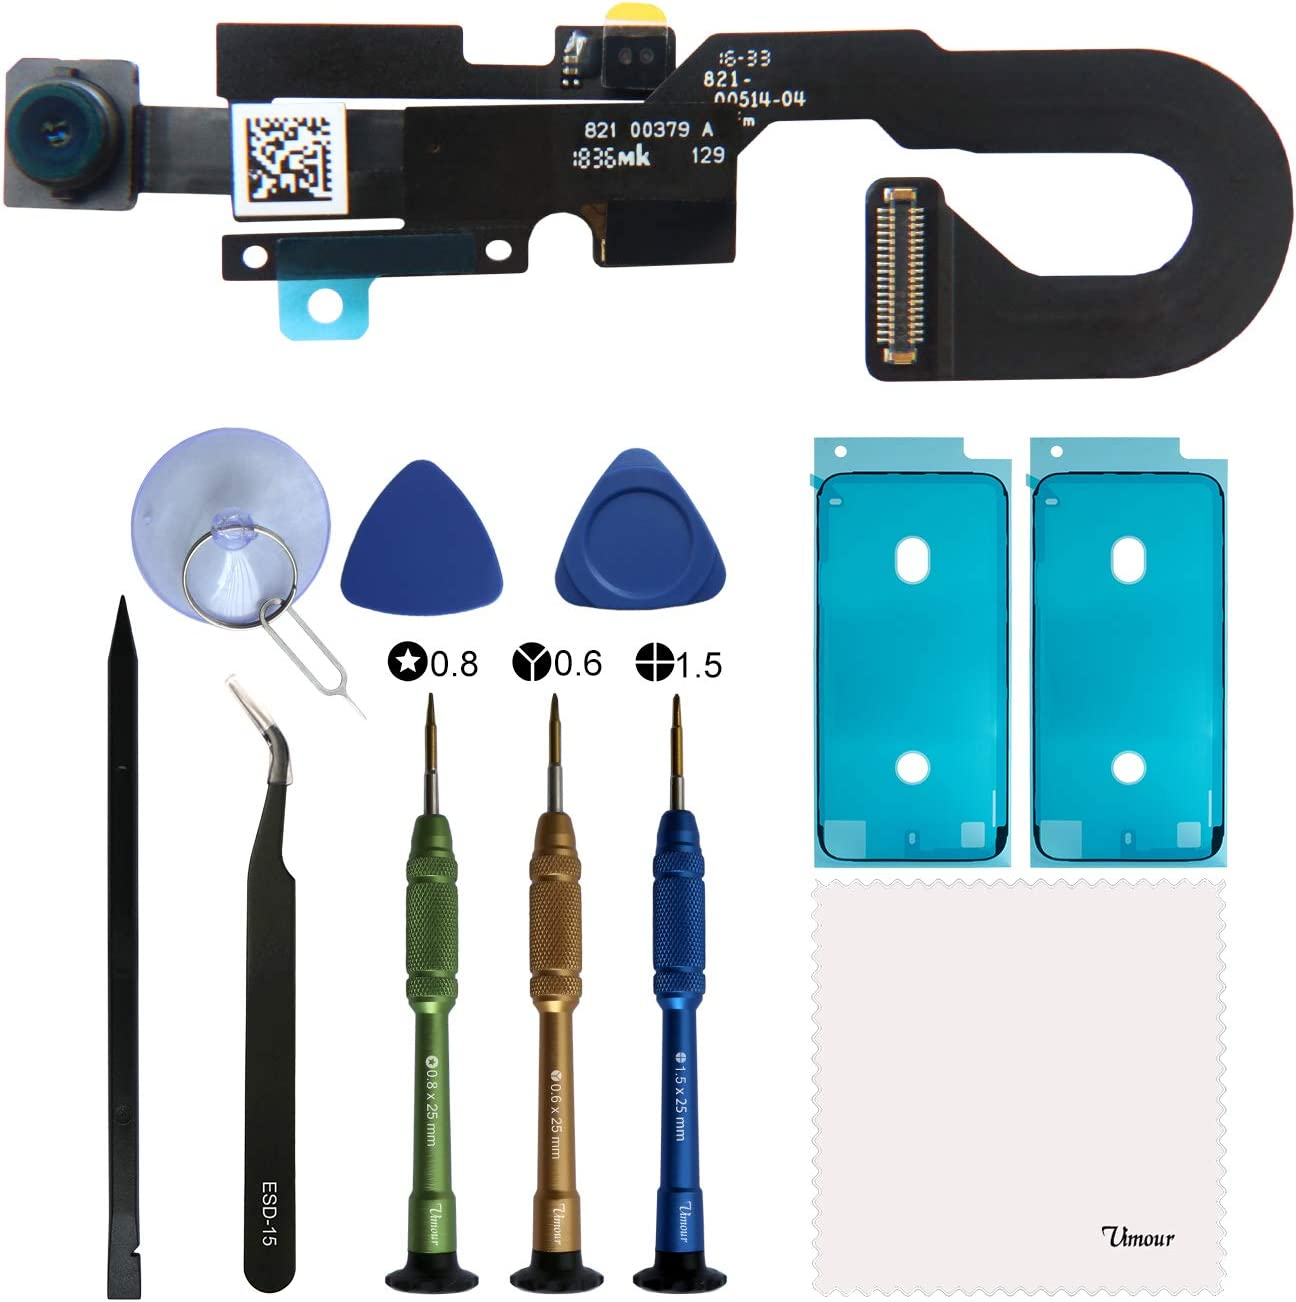 Vimour OEM Front Camera Replacement for iPhone 7 4.7 inch Model (A1660, A1778 and A1779),Microphone Replacement,Proximity Light Sensor Flex Cable Ribbon Assembly with Repair Tools